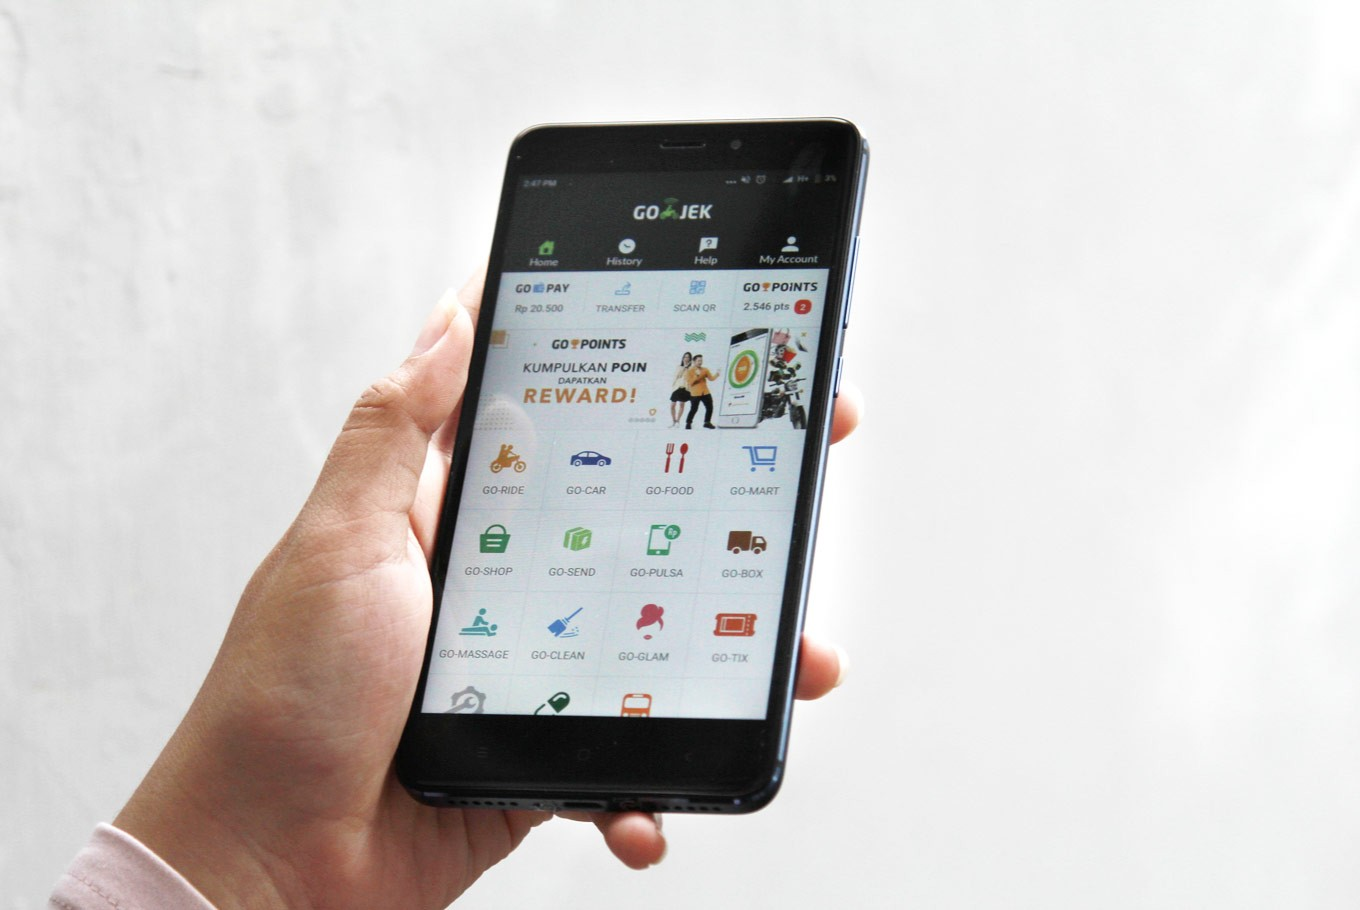 Go-Jek extends ride-hailing app to all Singapore consumers